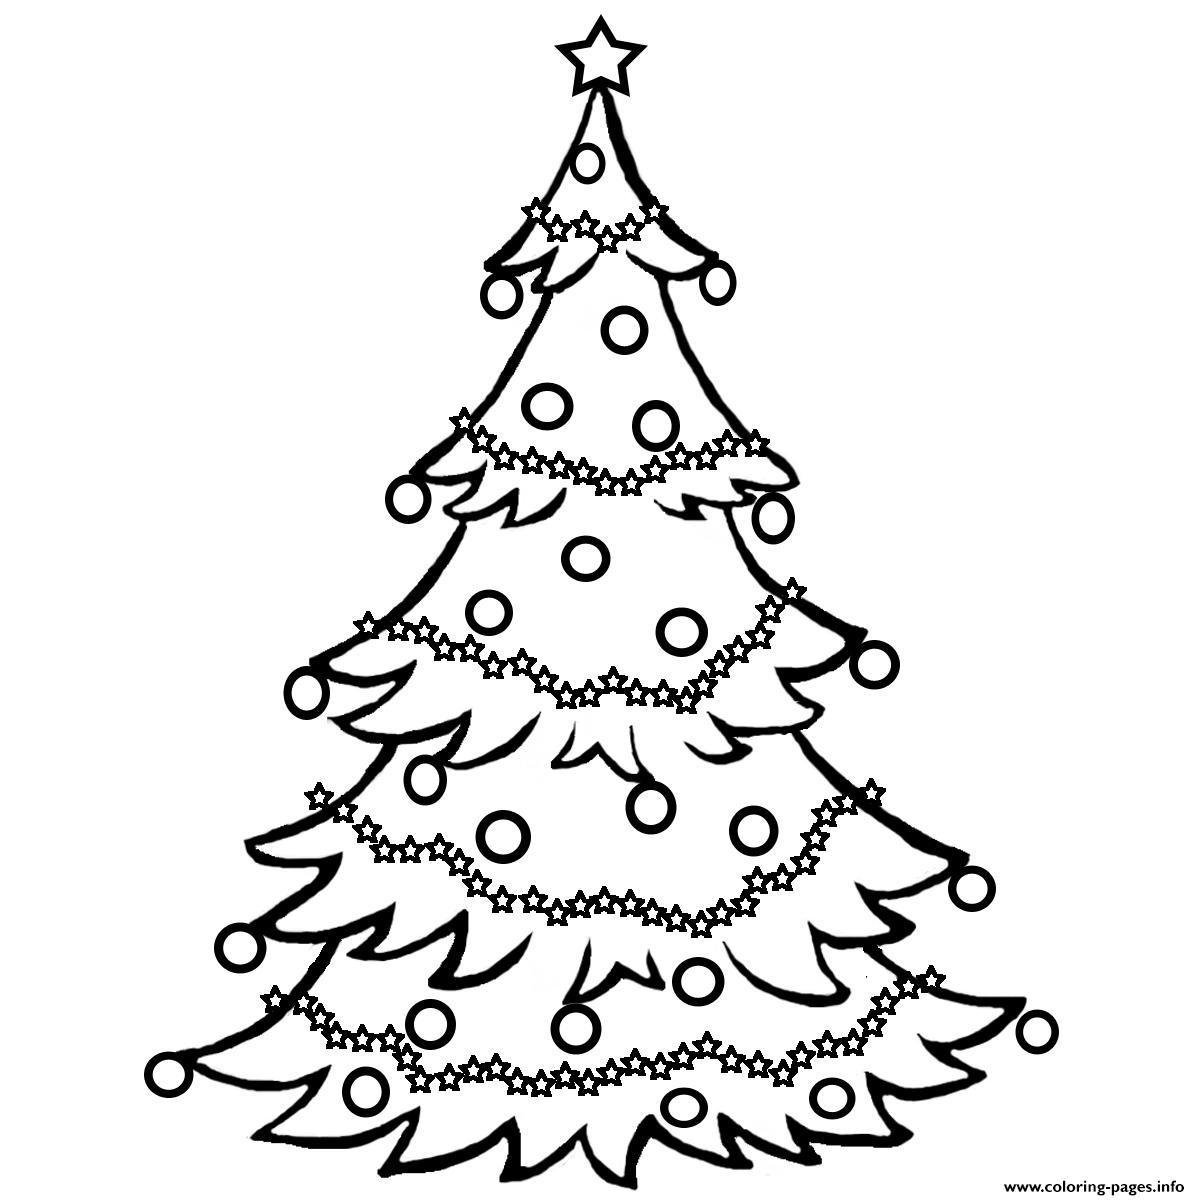 christmas tree free0ff6 coloring pages - Coloring Pages Christmas Trees